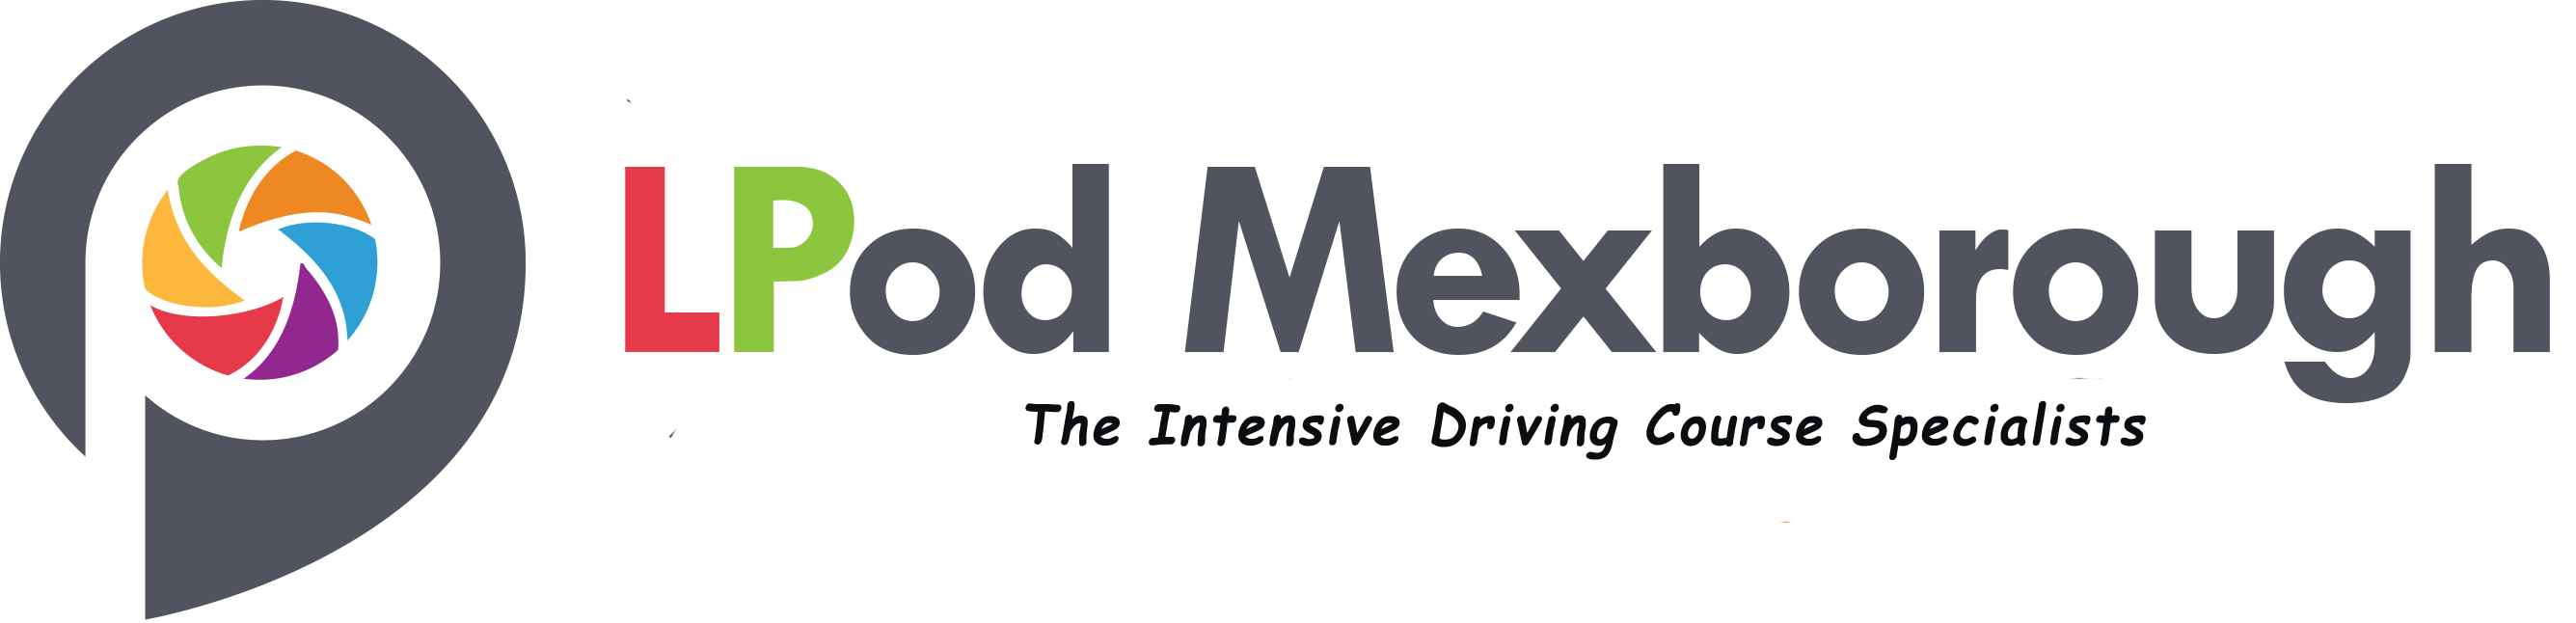 intensive driving courses Mexborough